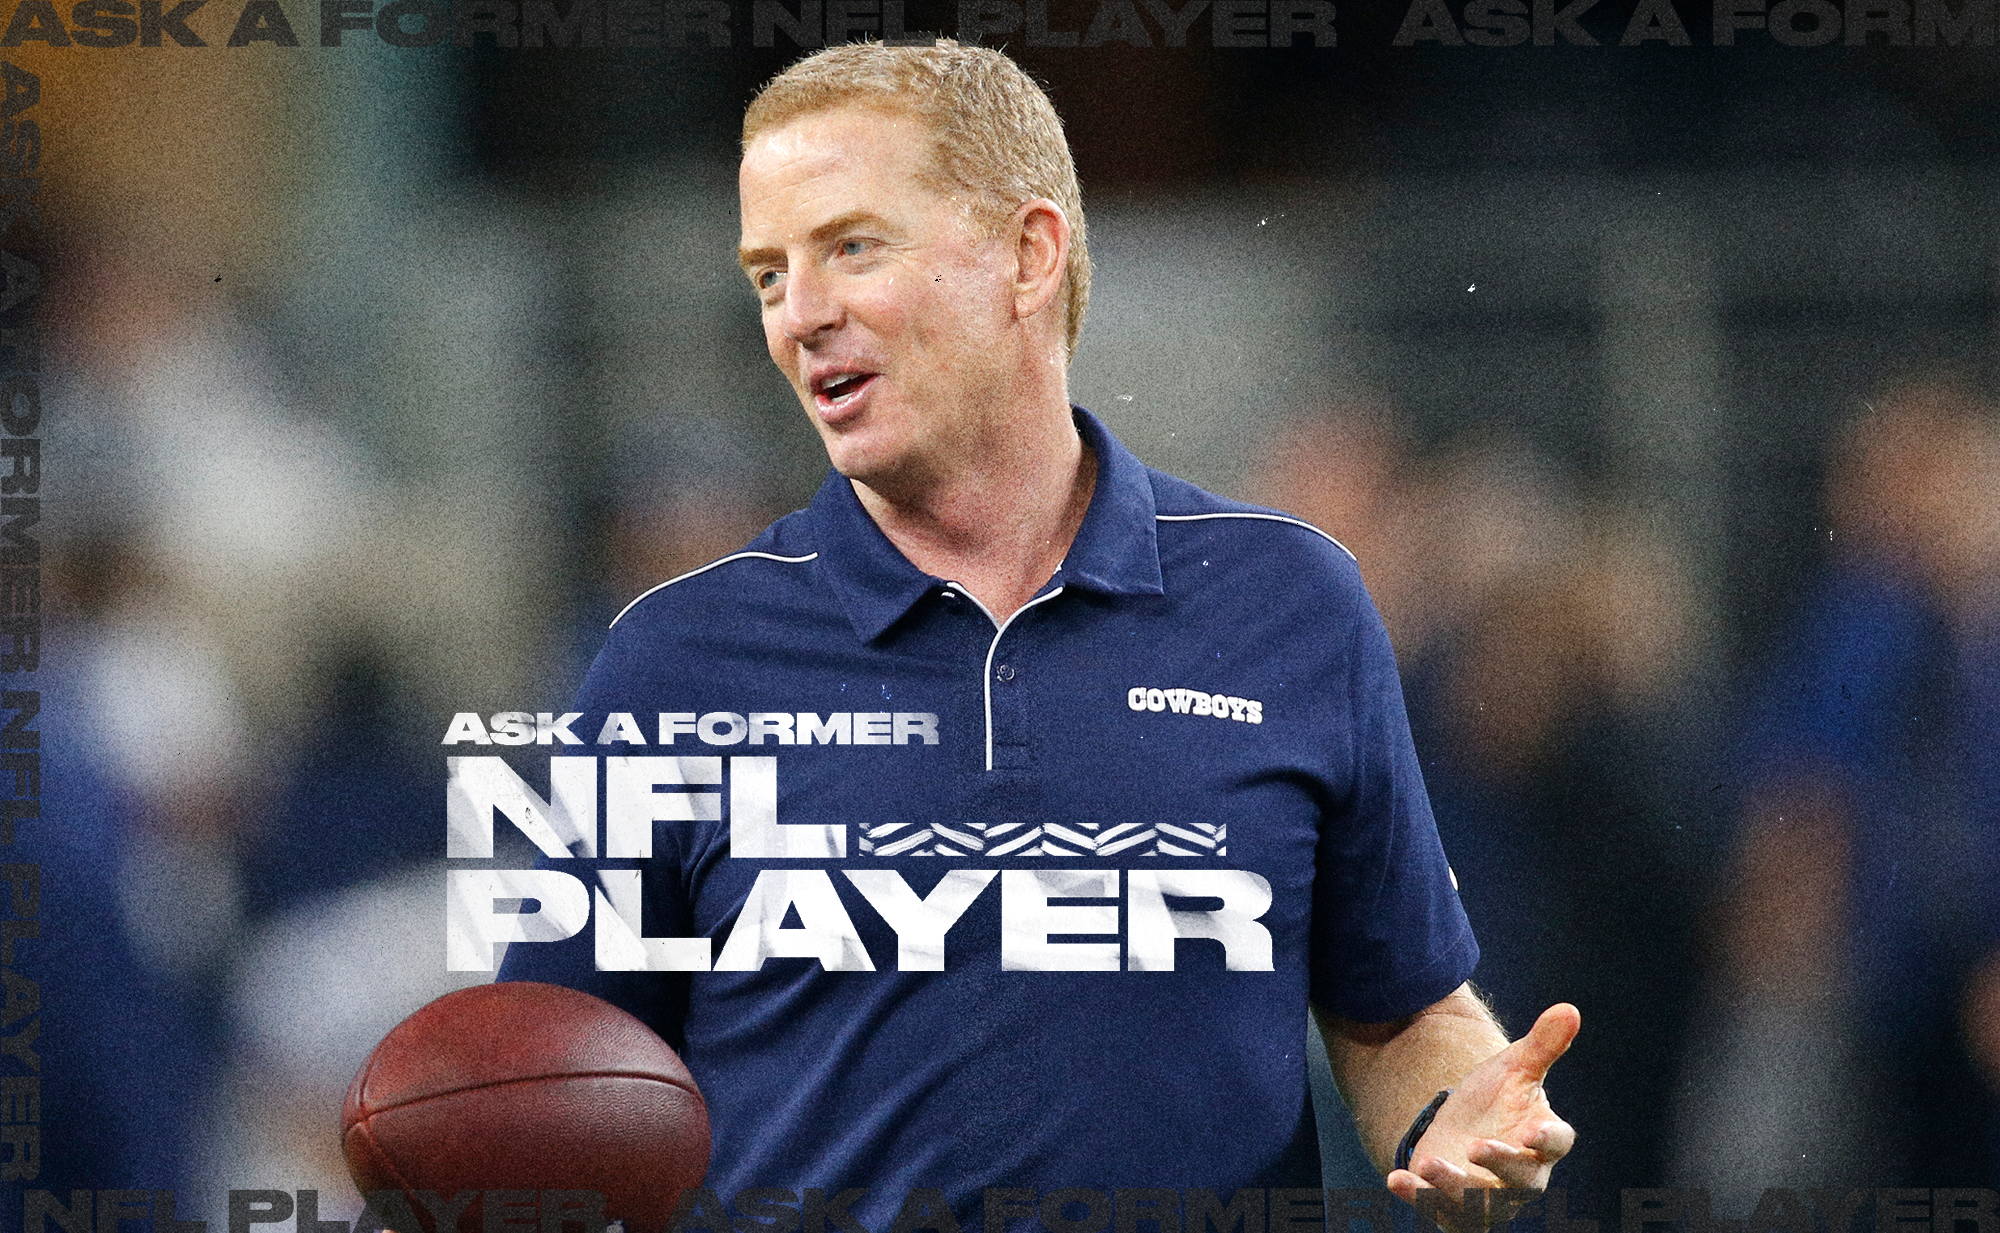 """Cowboys coach Jason Garrett shrugs while holding a football in his right hand, with the words """"Ask a former NFL player"""" in the background"""